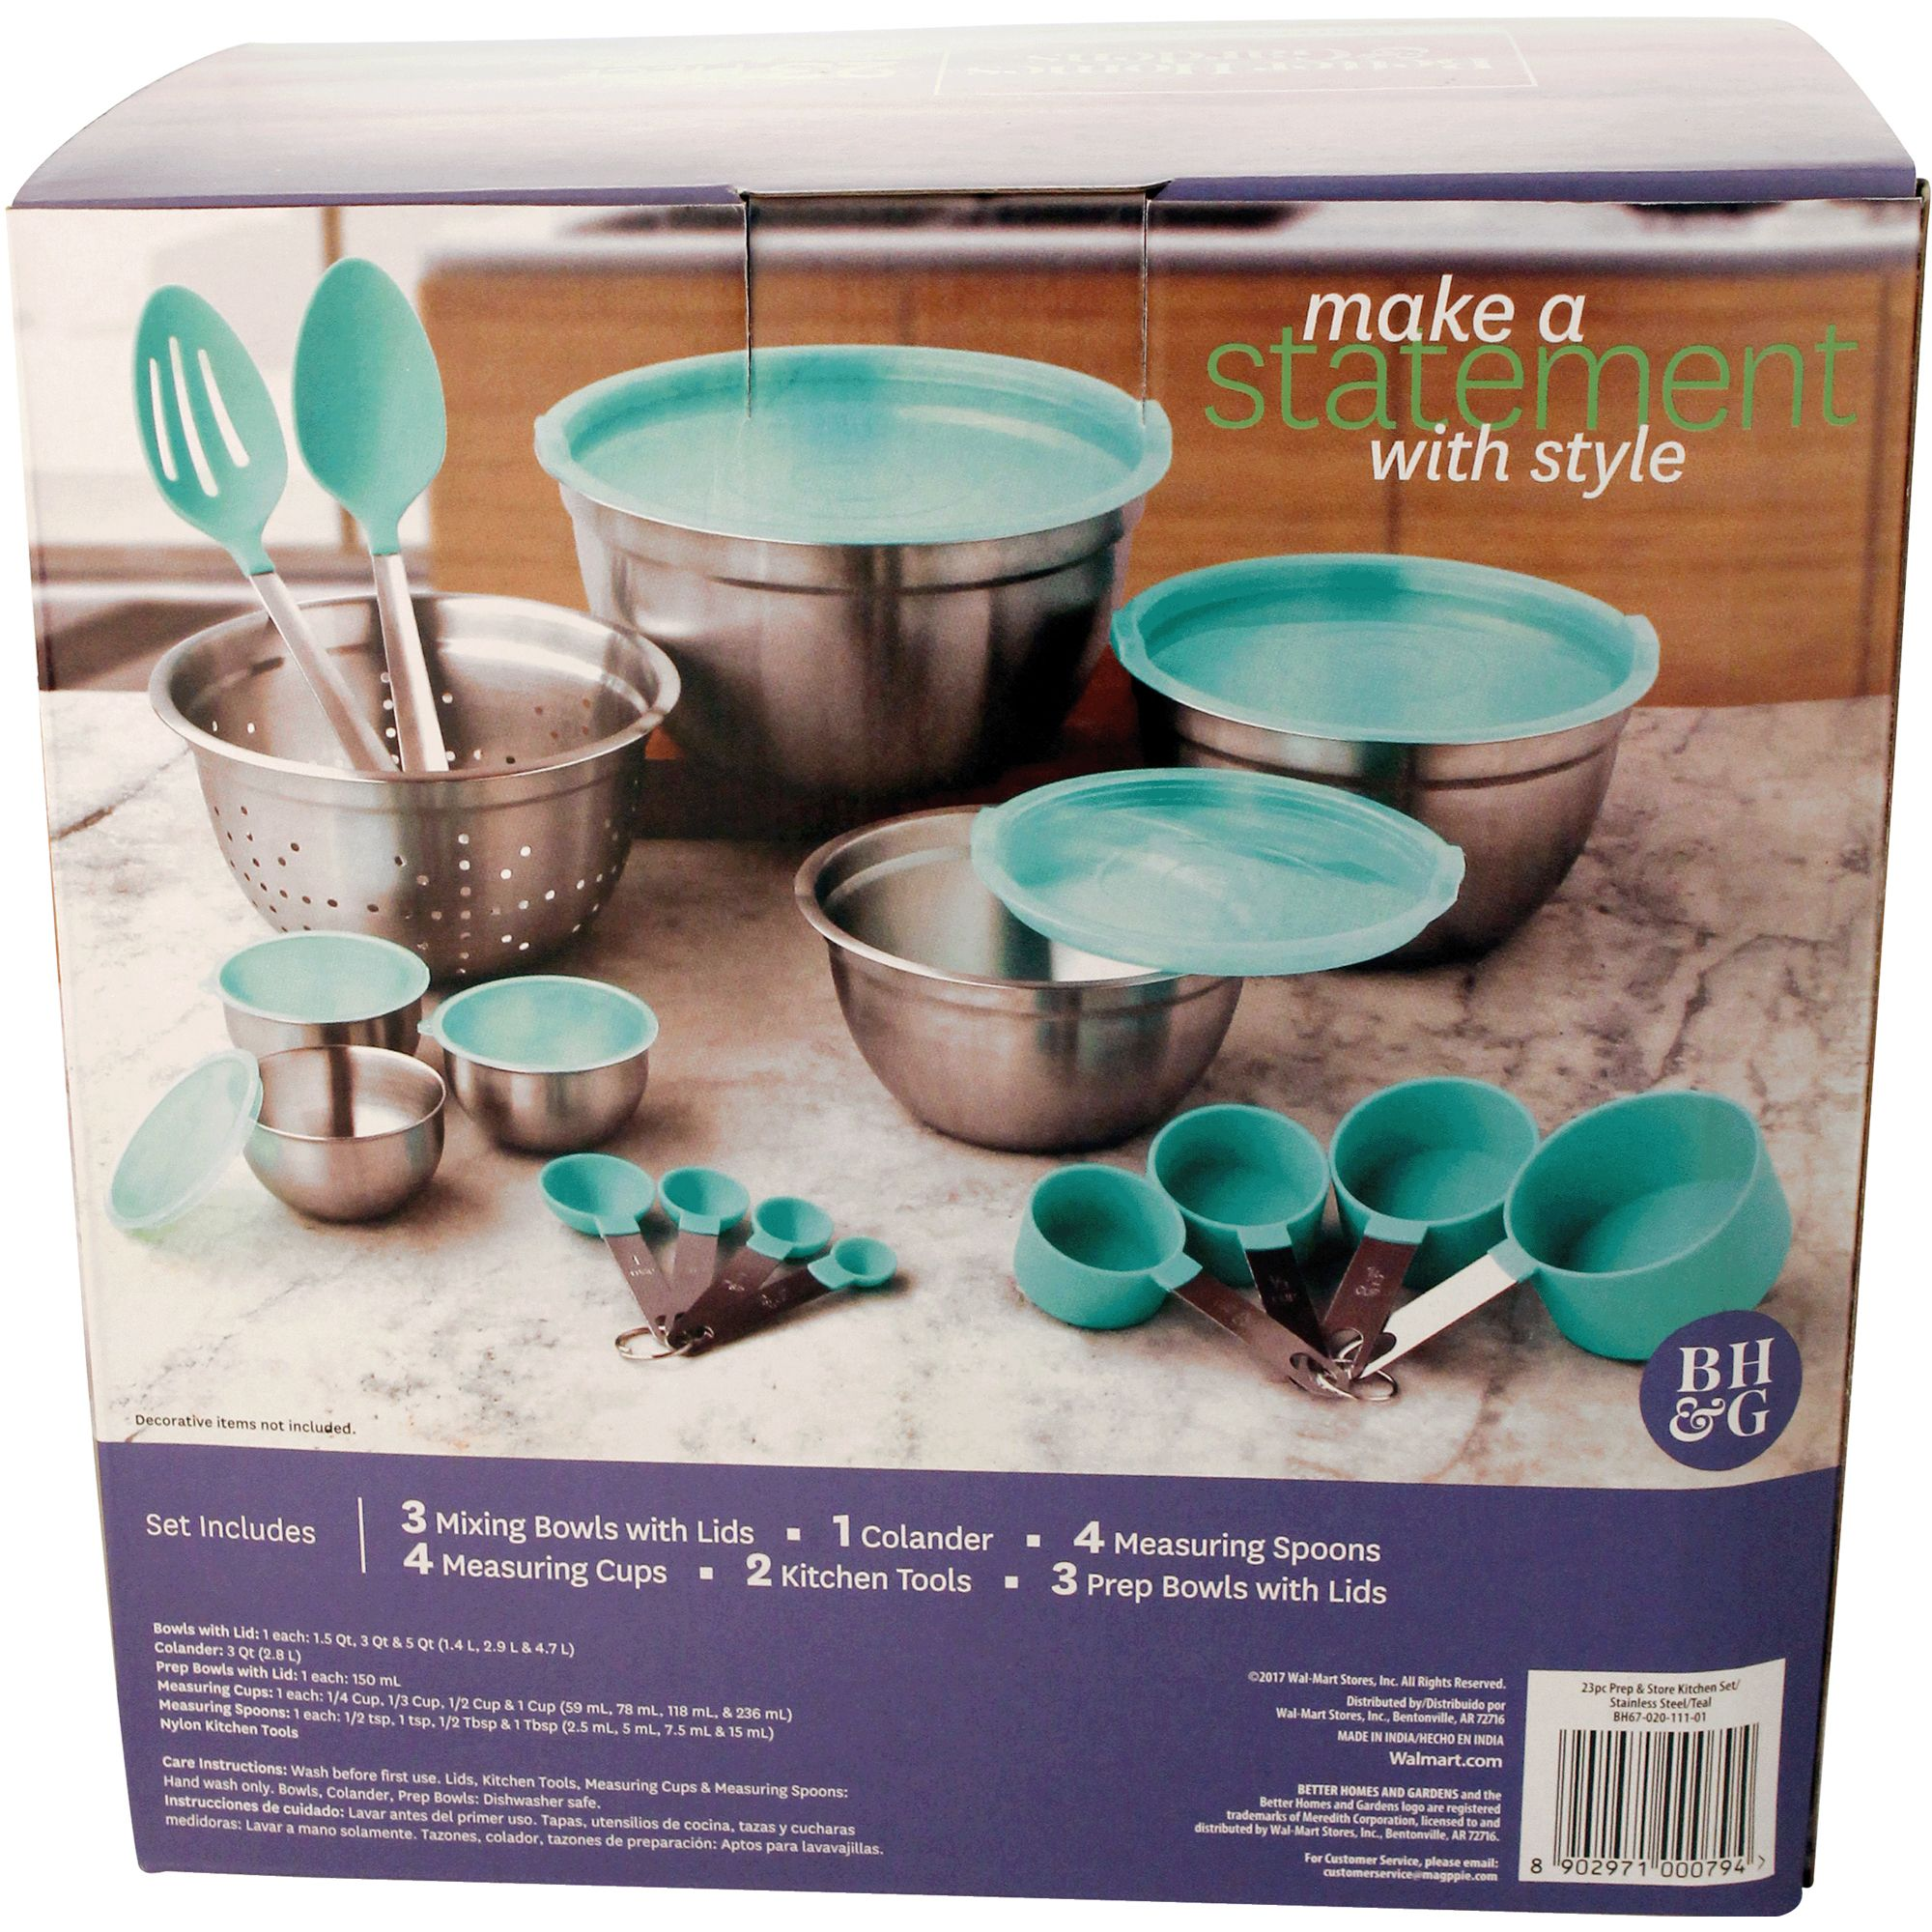 da66456f8fae95a38e2f39ef28677a90 - Better Homes And Gardens Stainless Steel Mixing Bowl Set